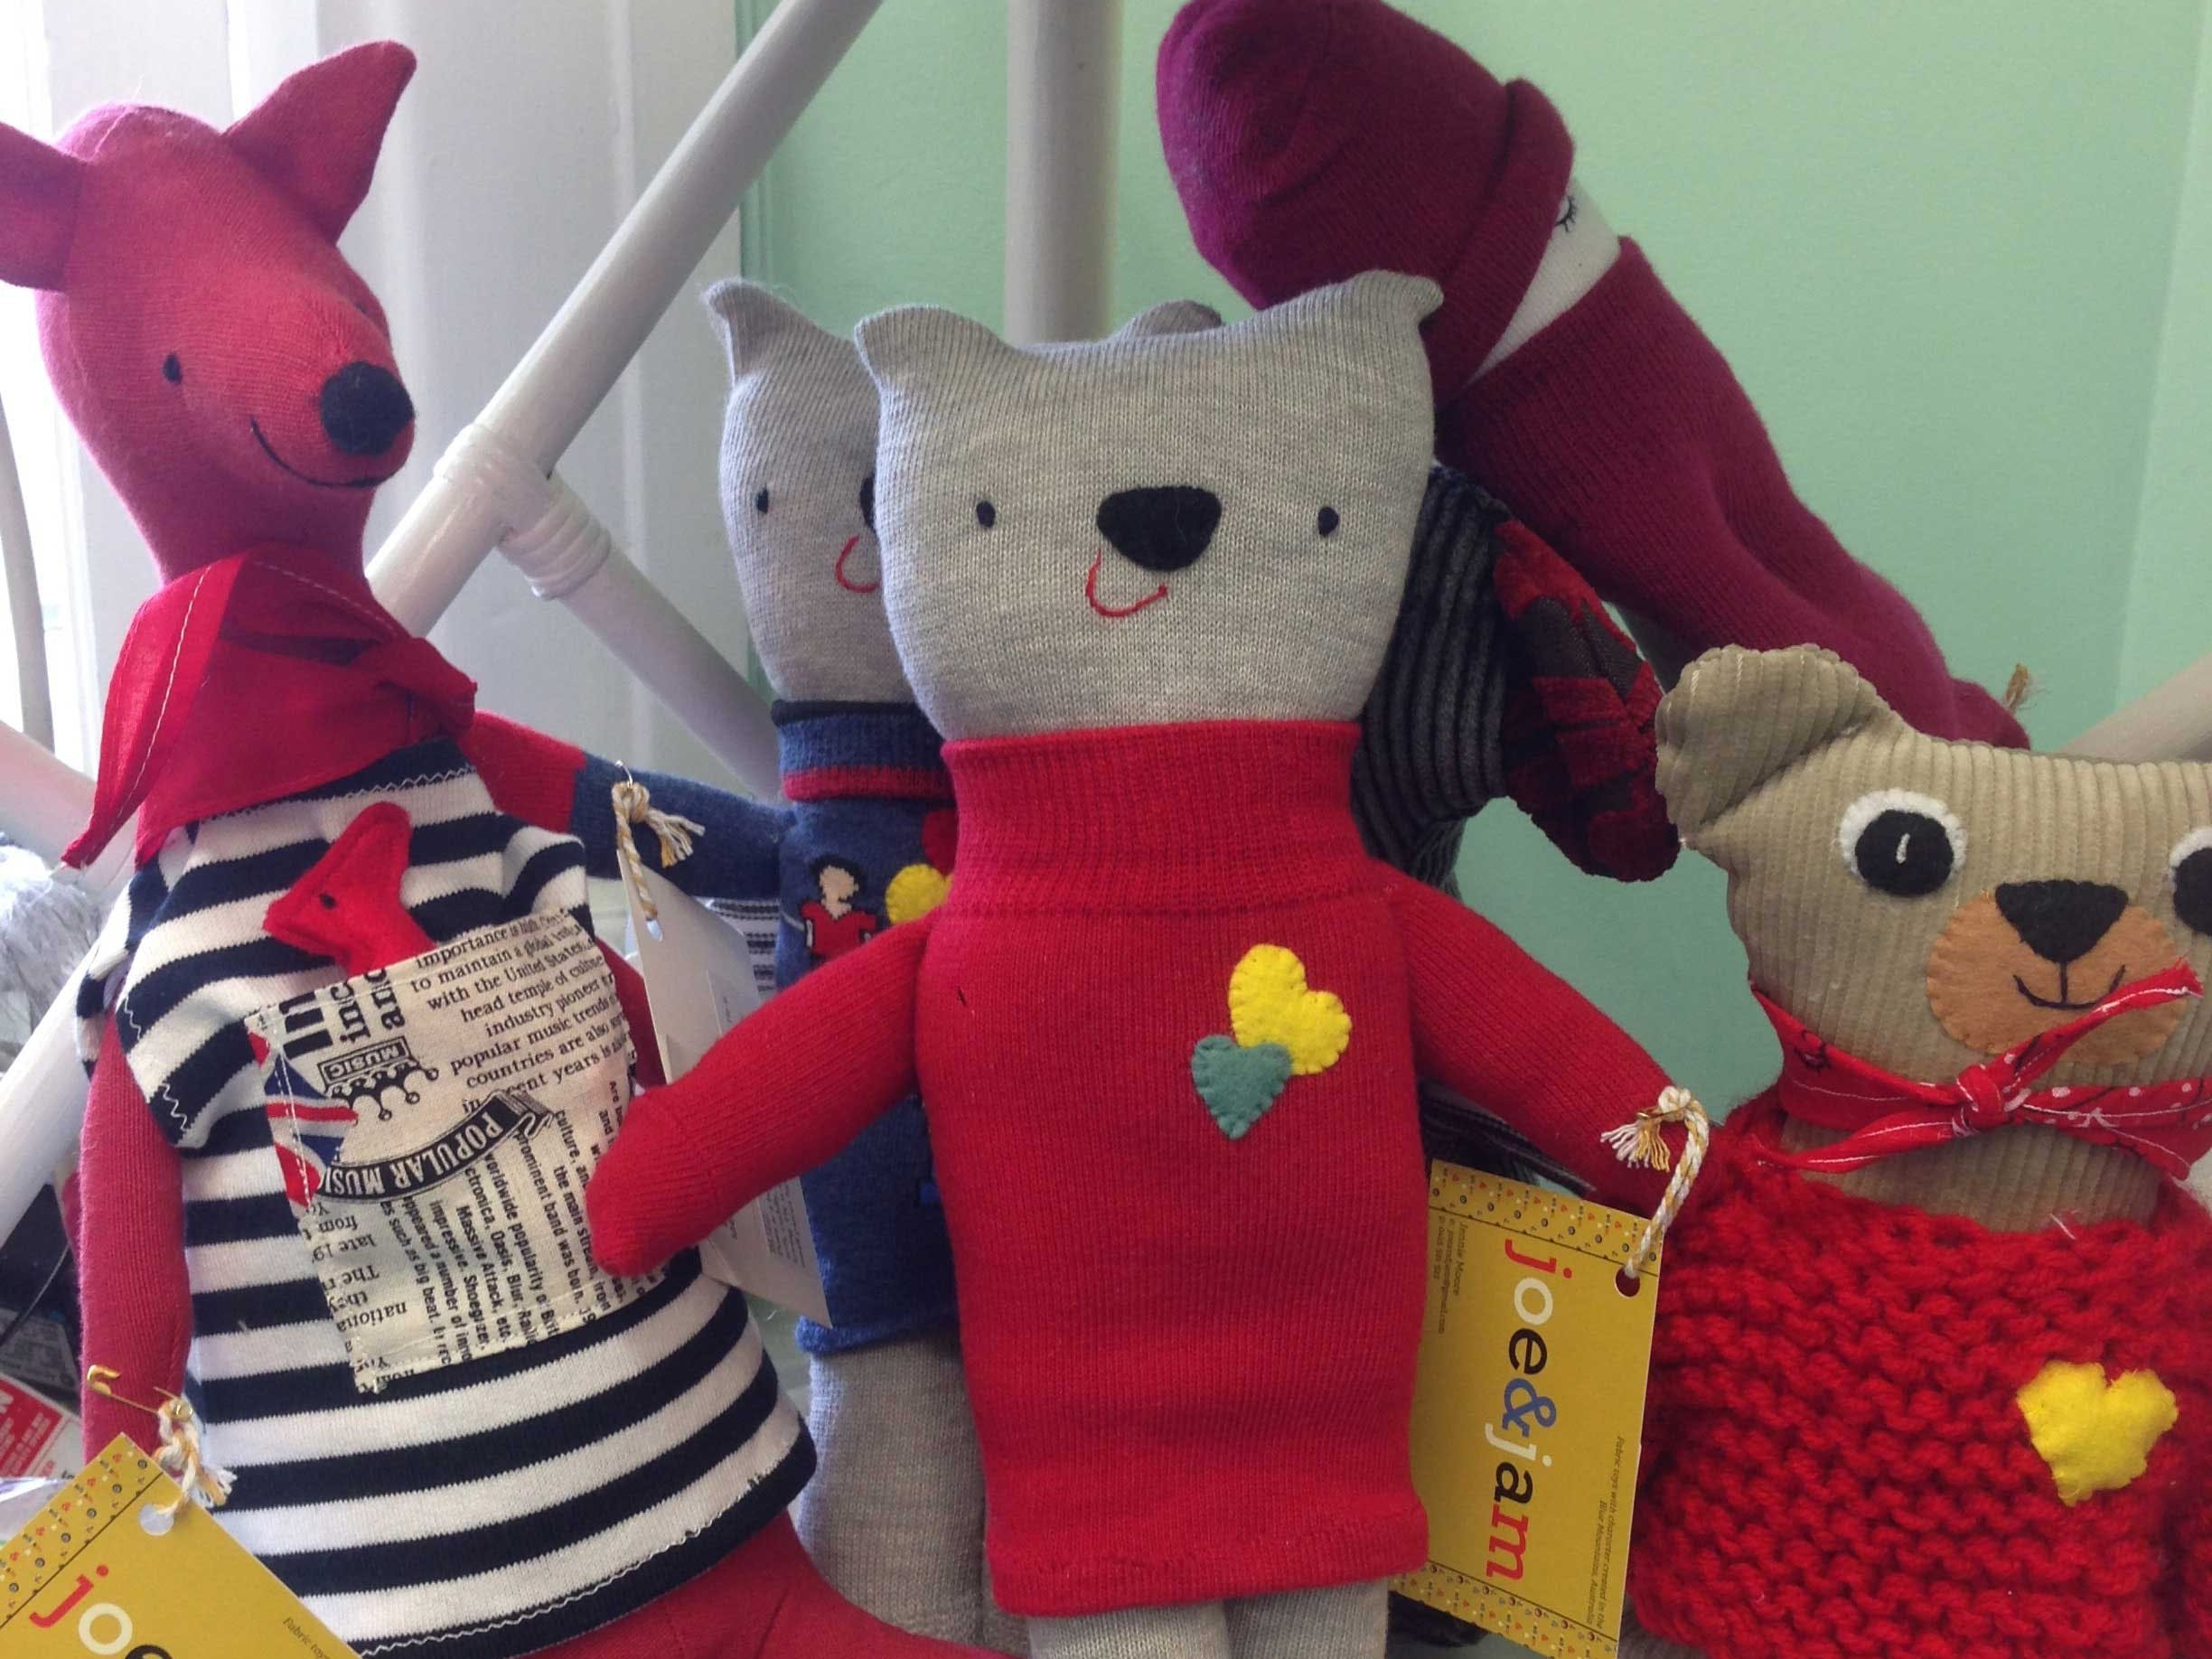 All ages catered for! Handmade toys by Joe and Jam